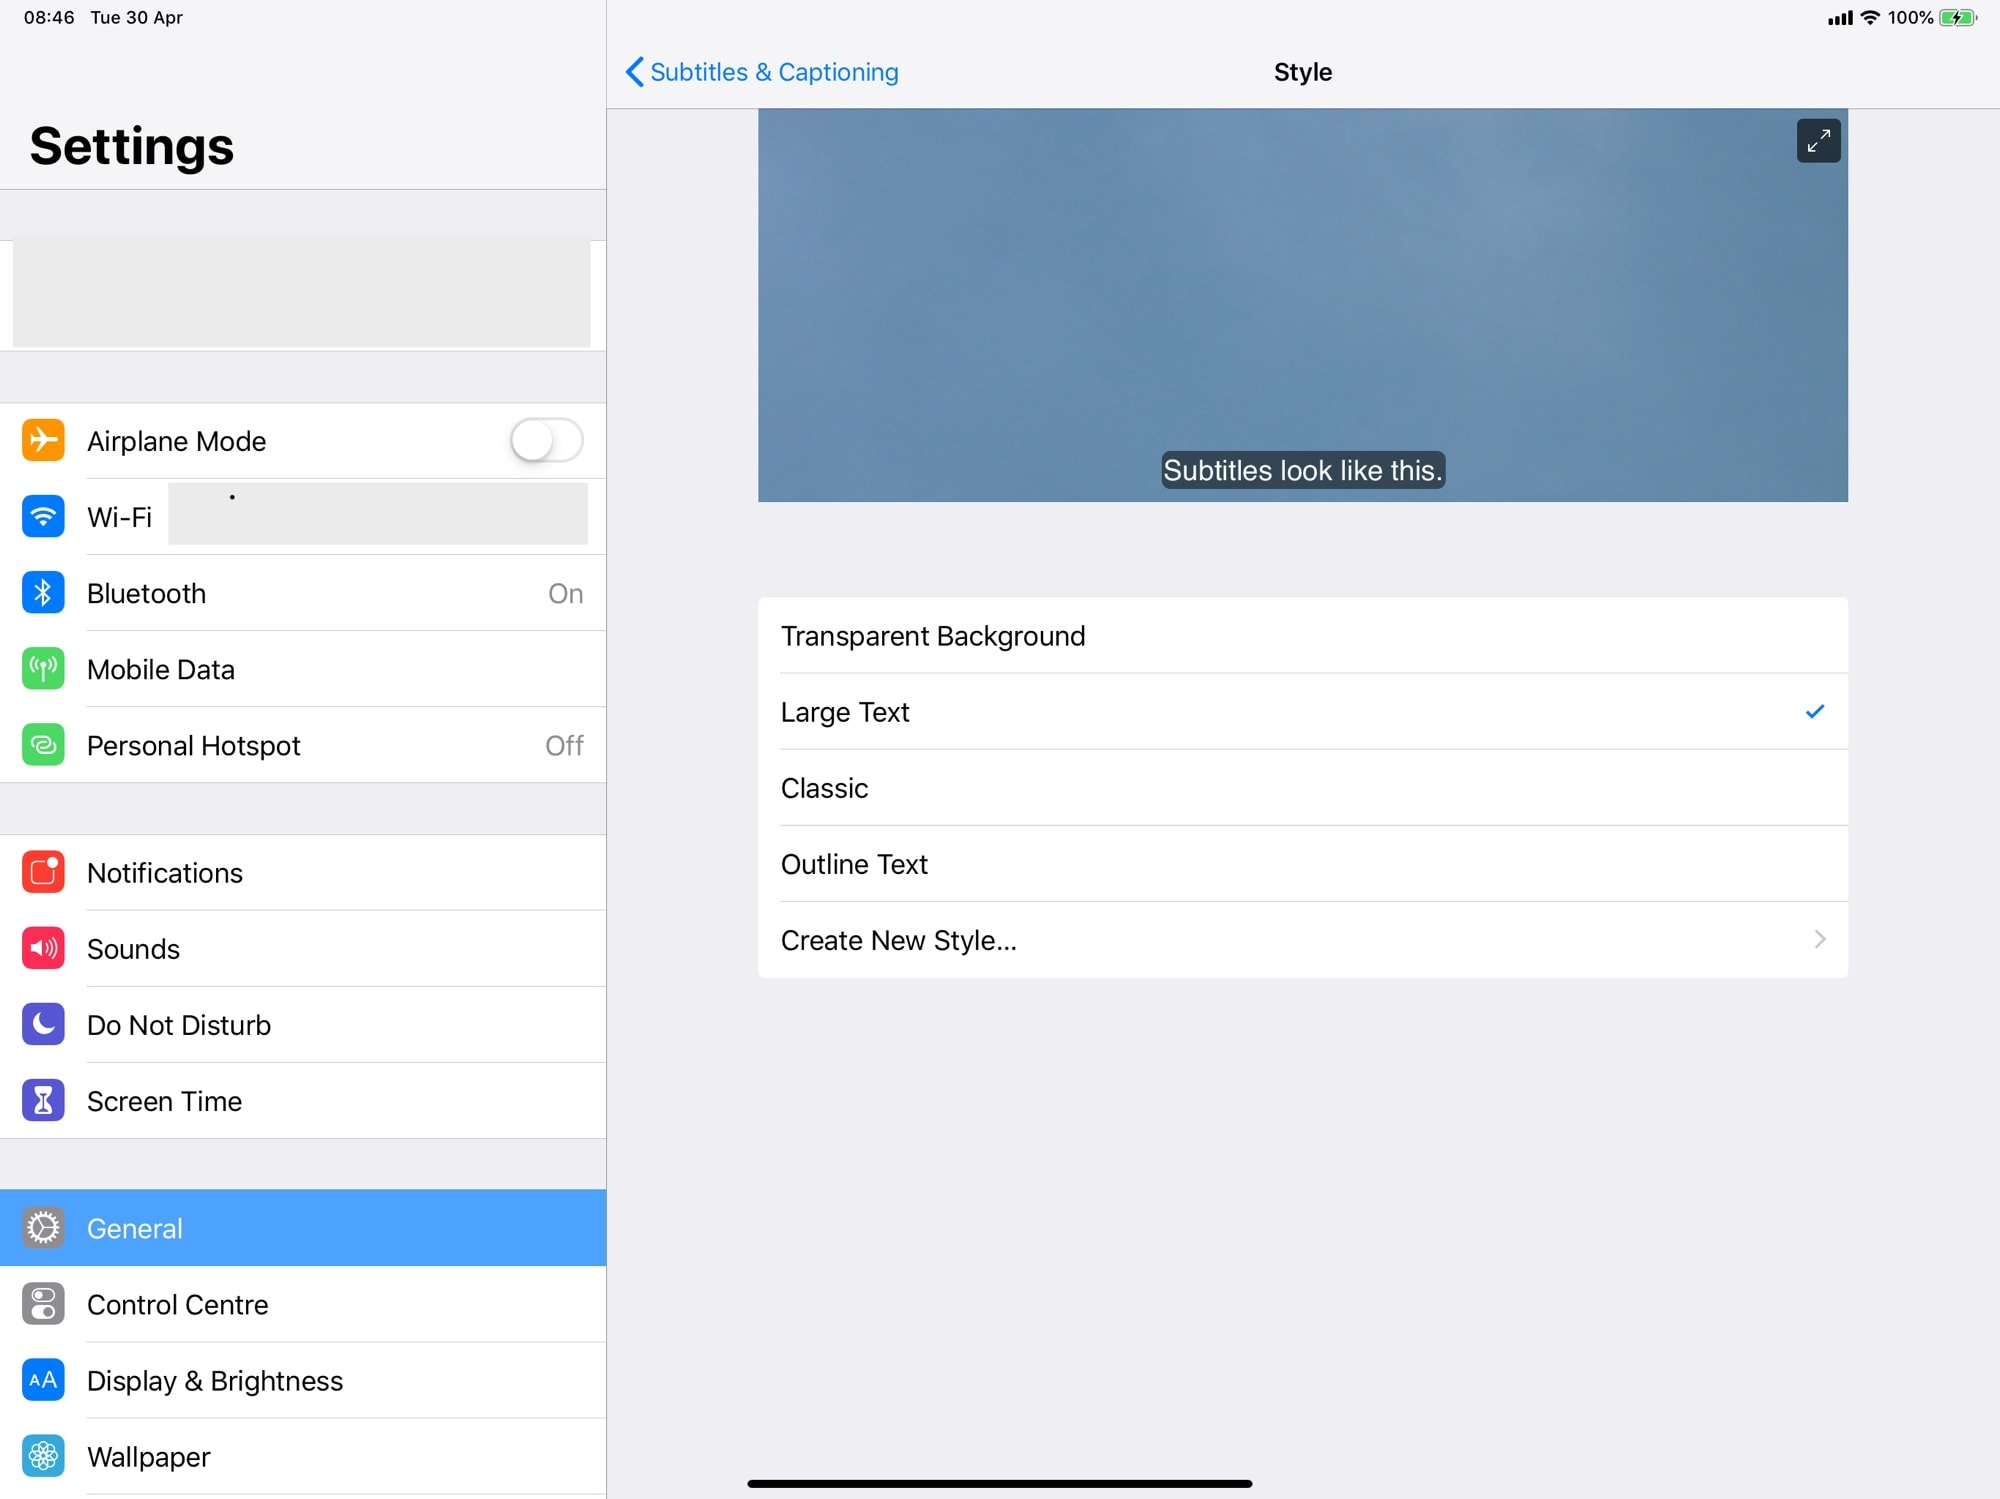 How to find video subtitles on Mac and iOS the easy way